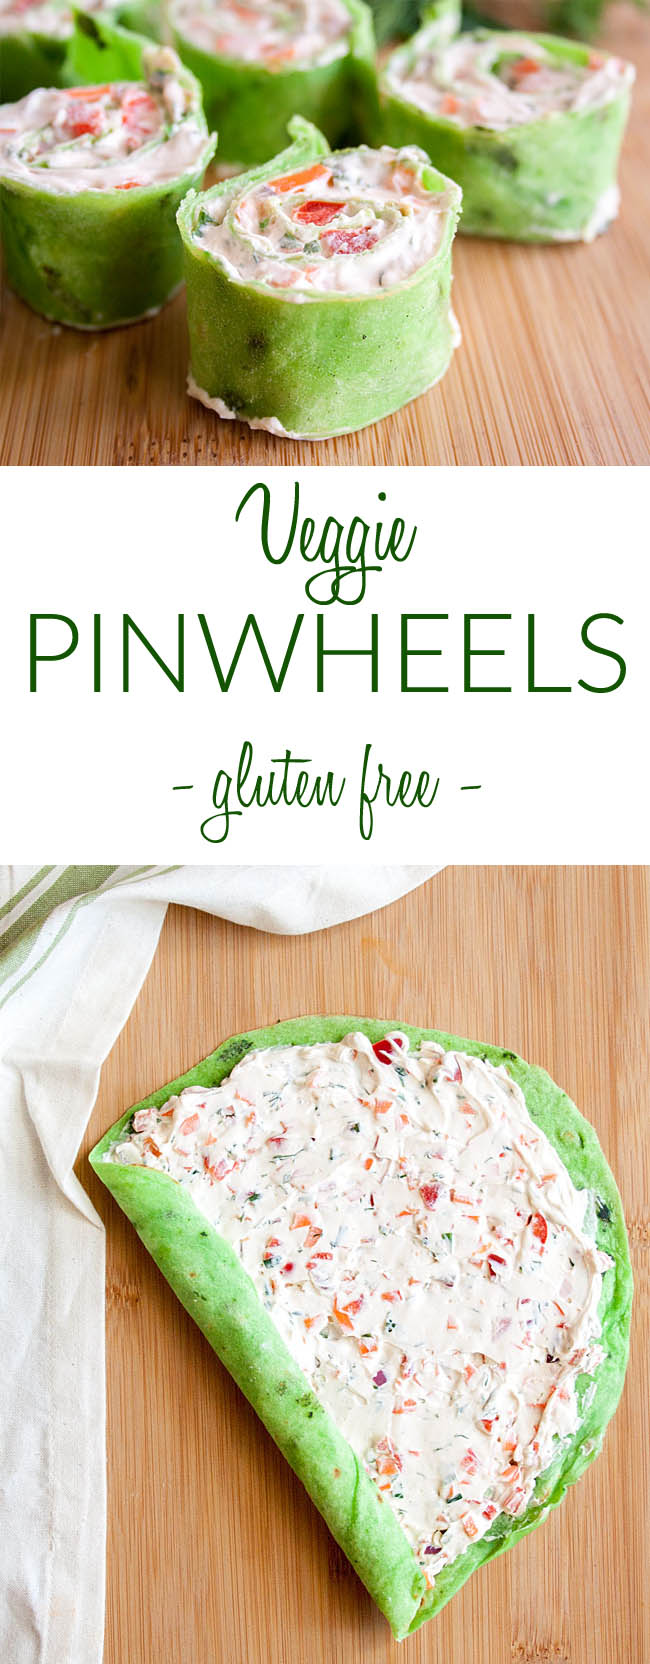 Vegan Veggie Pinwheels Tortilla Roll Ups collage photo with text.